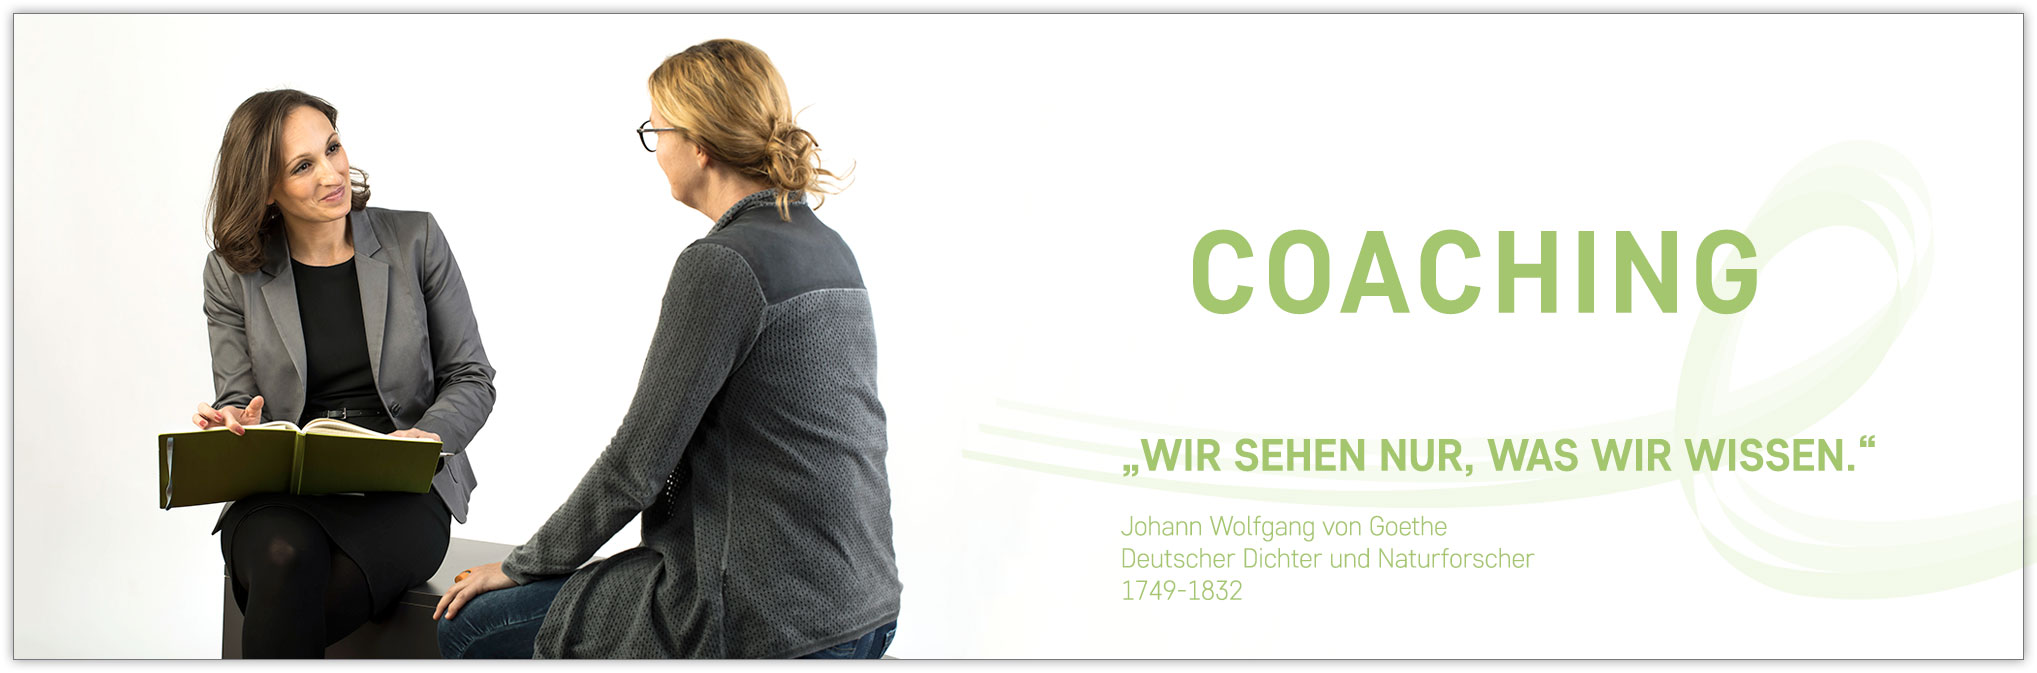 Coaching mit Michaela Pawlek